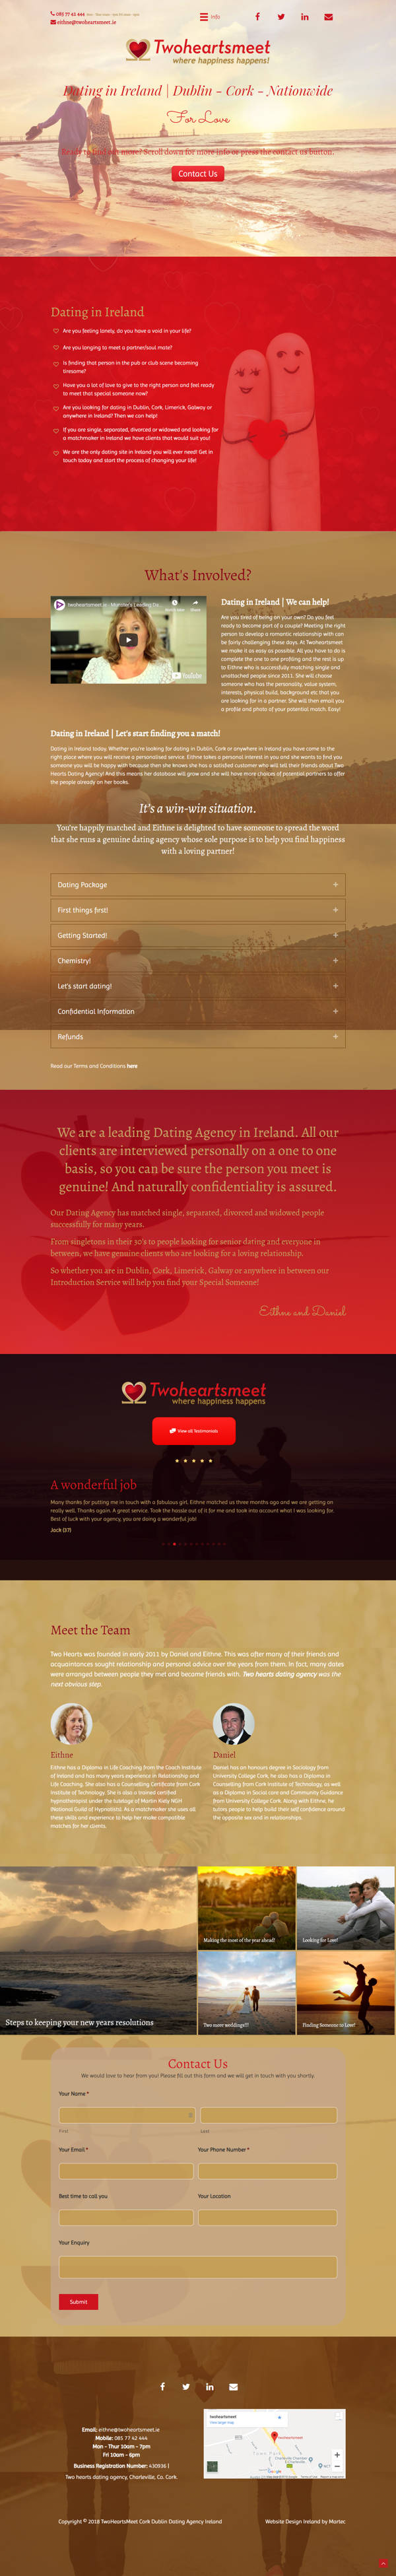 Intro Dating Ireland - How it Works - INTRO Matchmaking